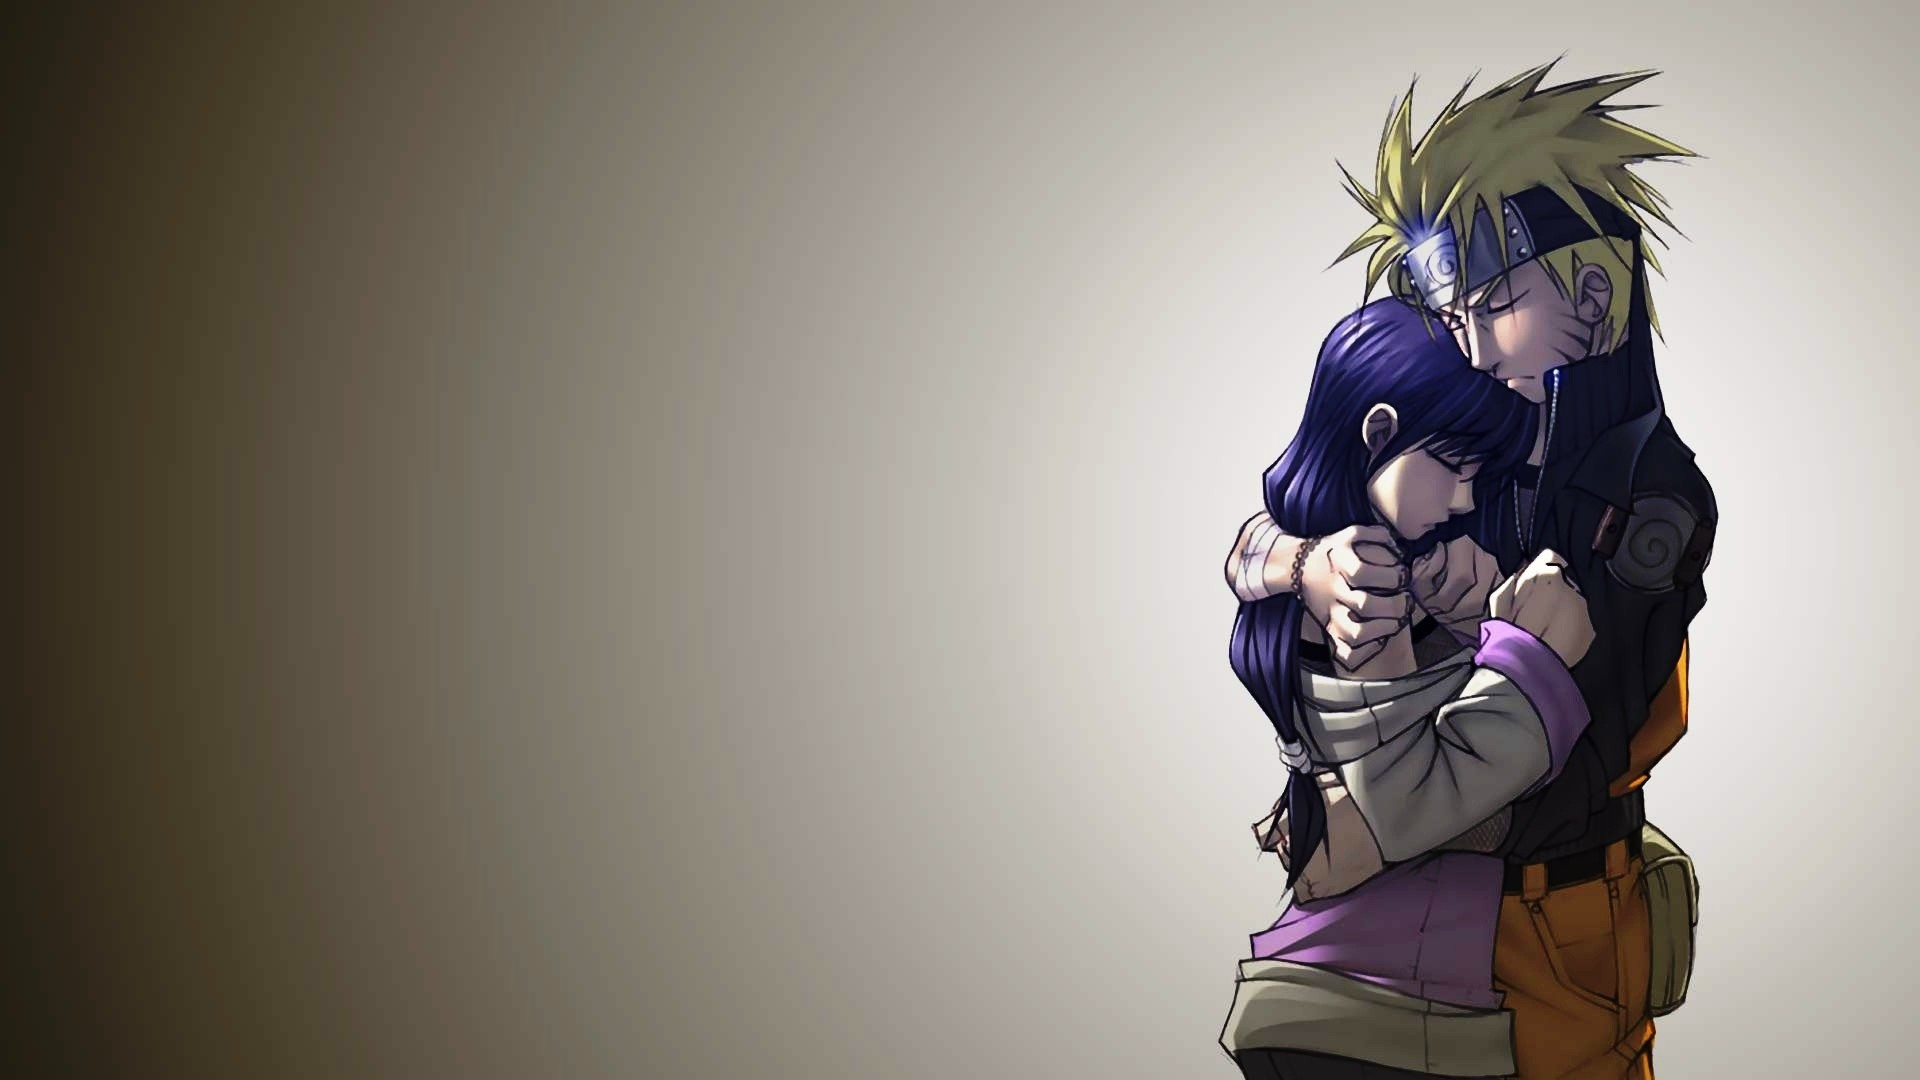 Res: 1920x1080, sweet couple anime wallpaper